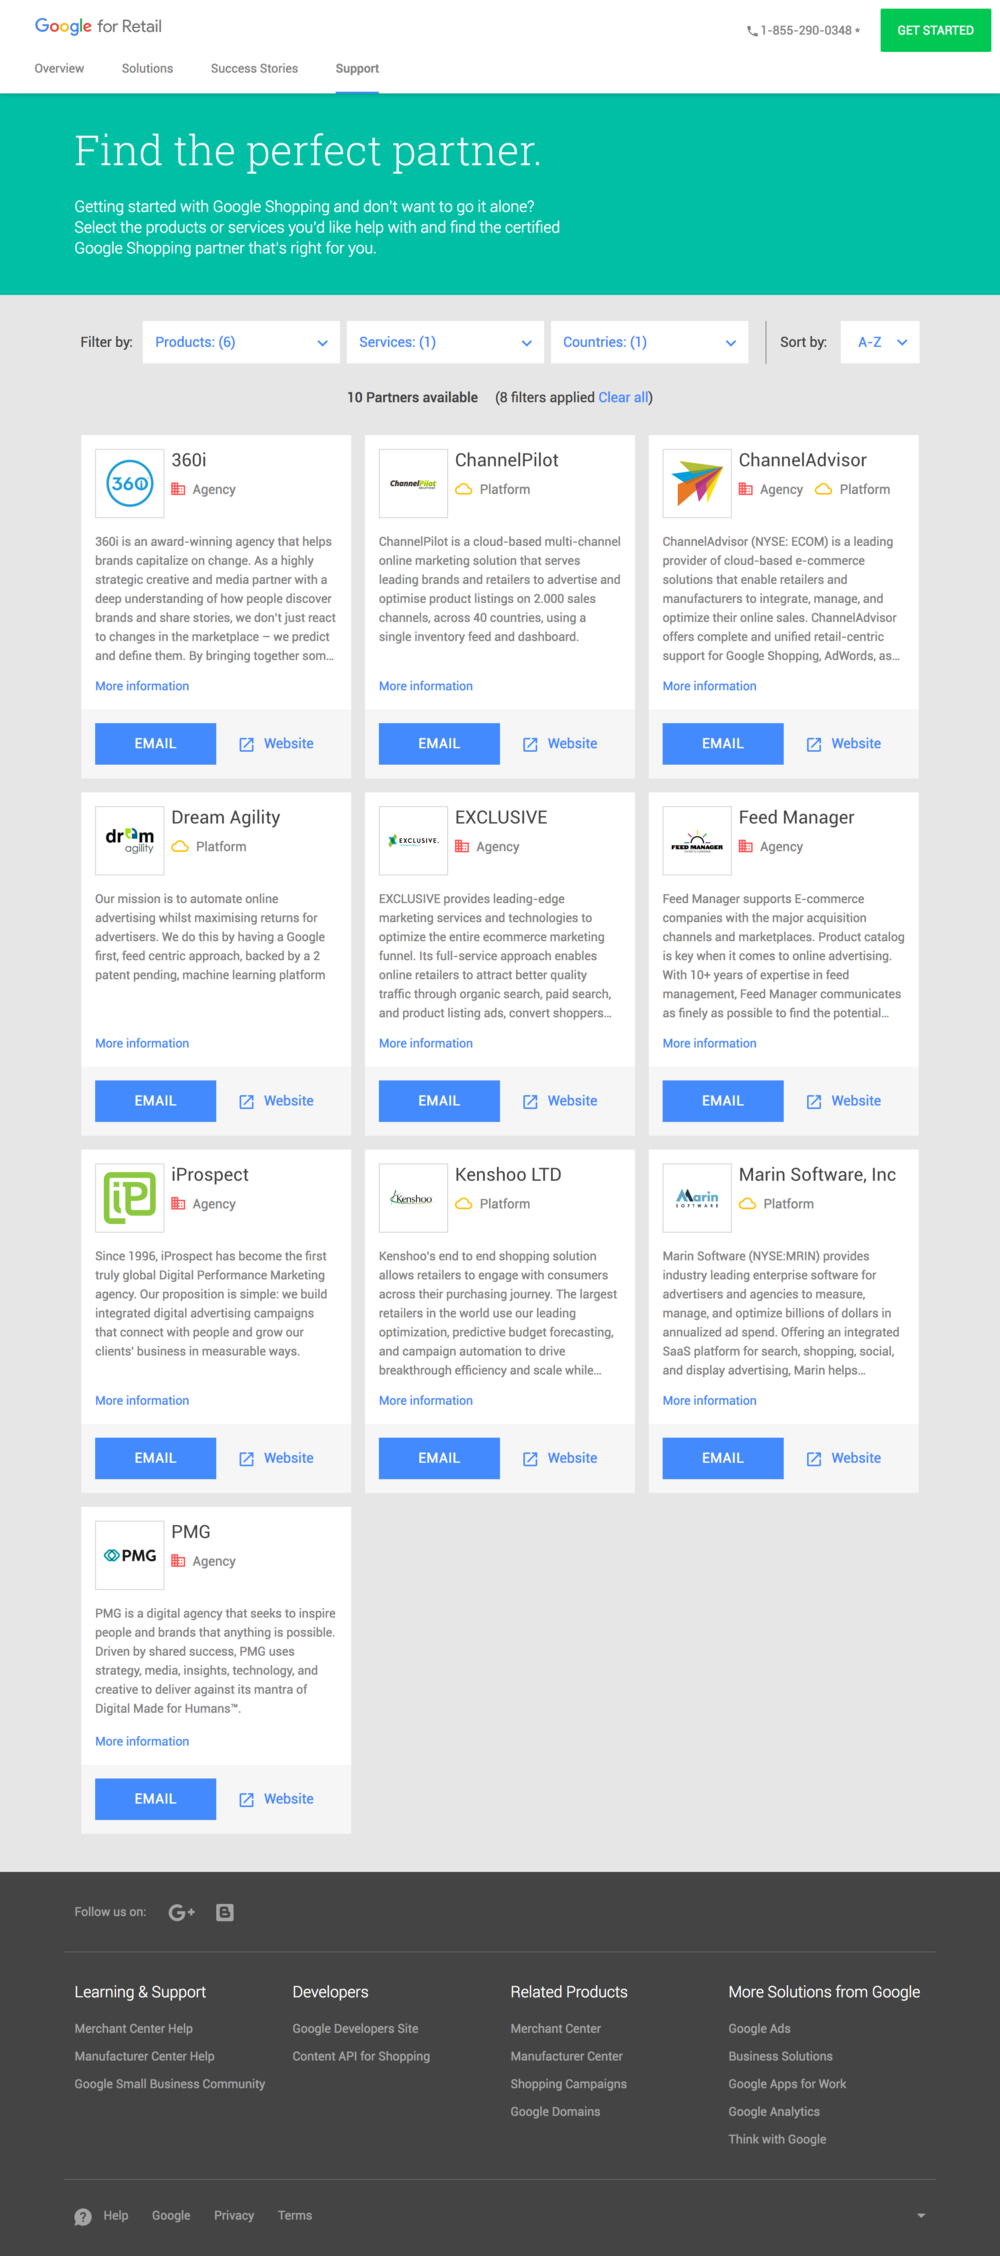 screencapture-google-retail-get-help-partners-search-2018-10-12-15_34_17.png